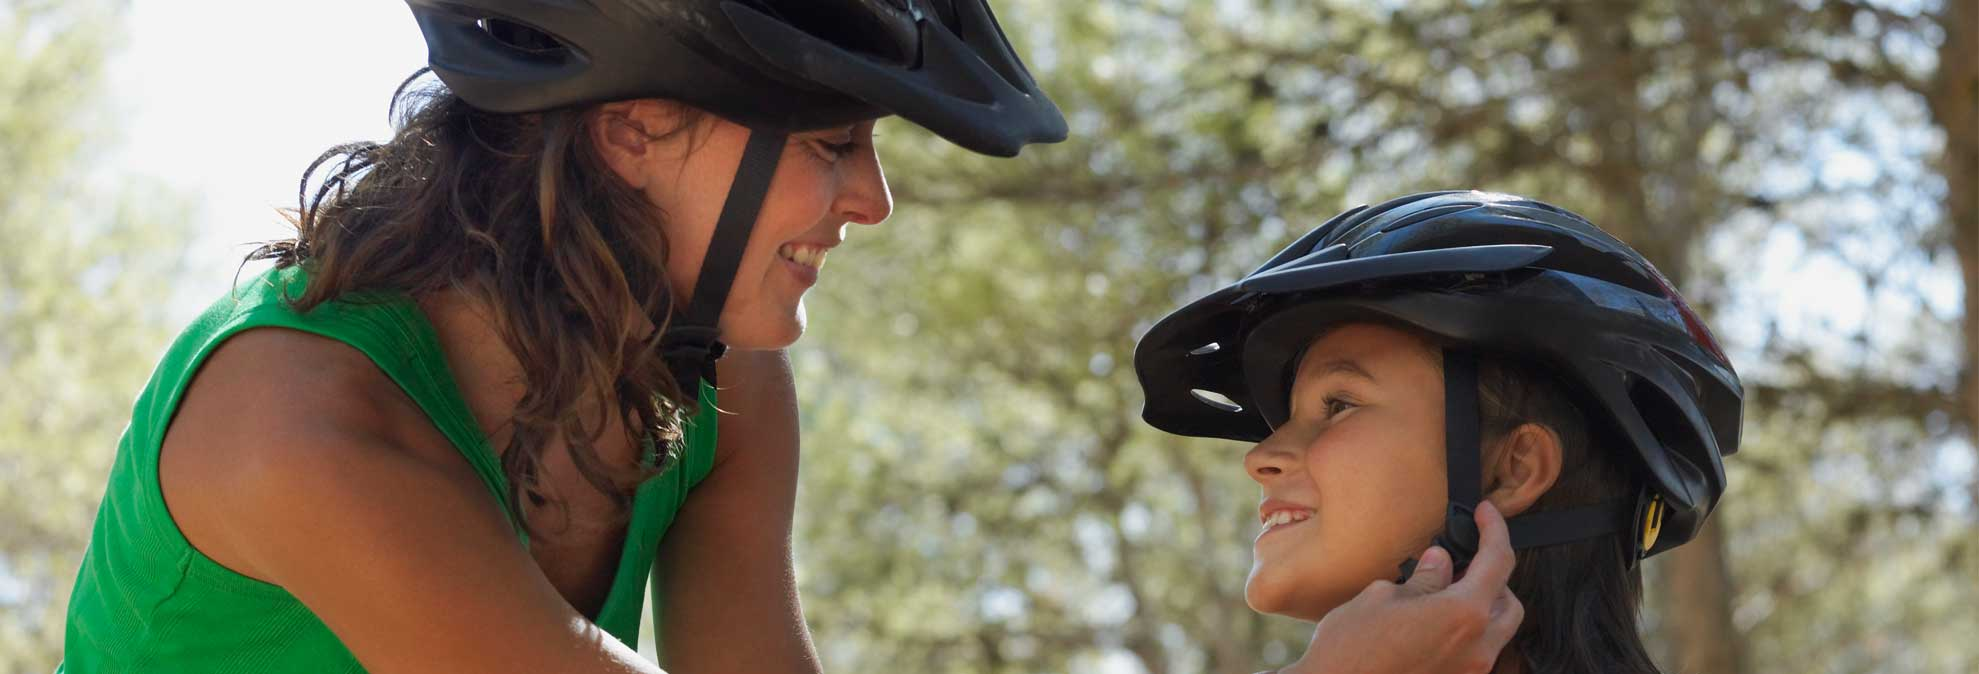 Get The Right Bike Helmet Fit Consumer Reports